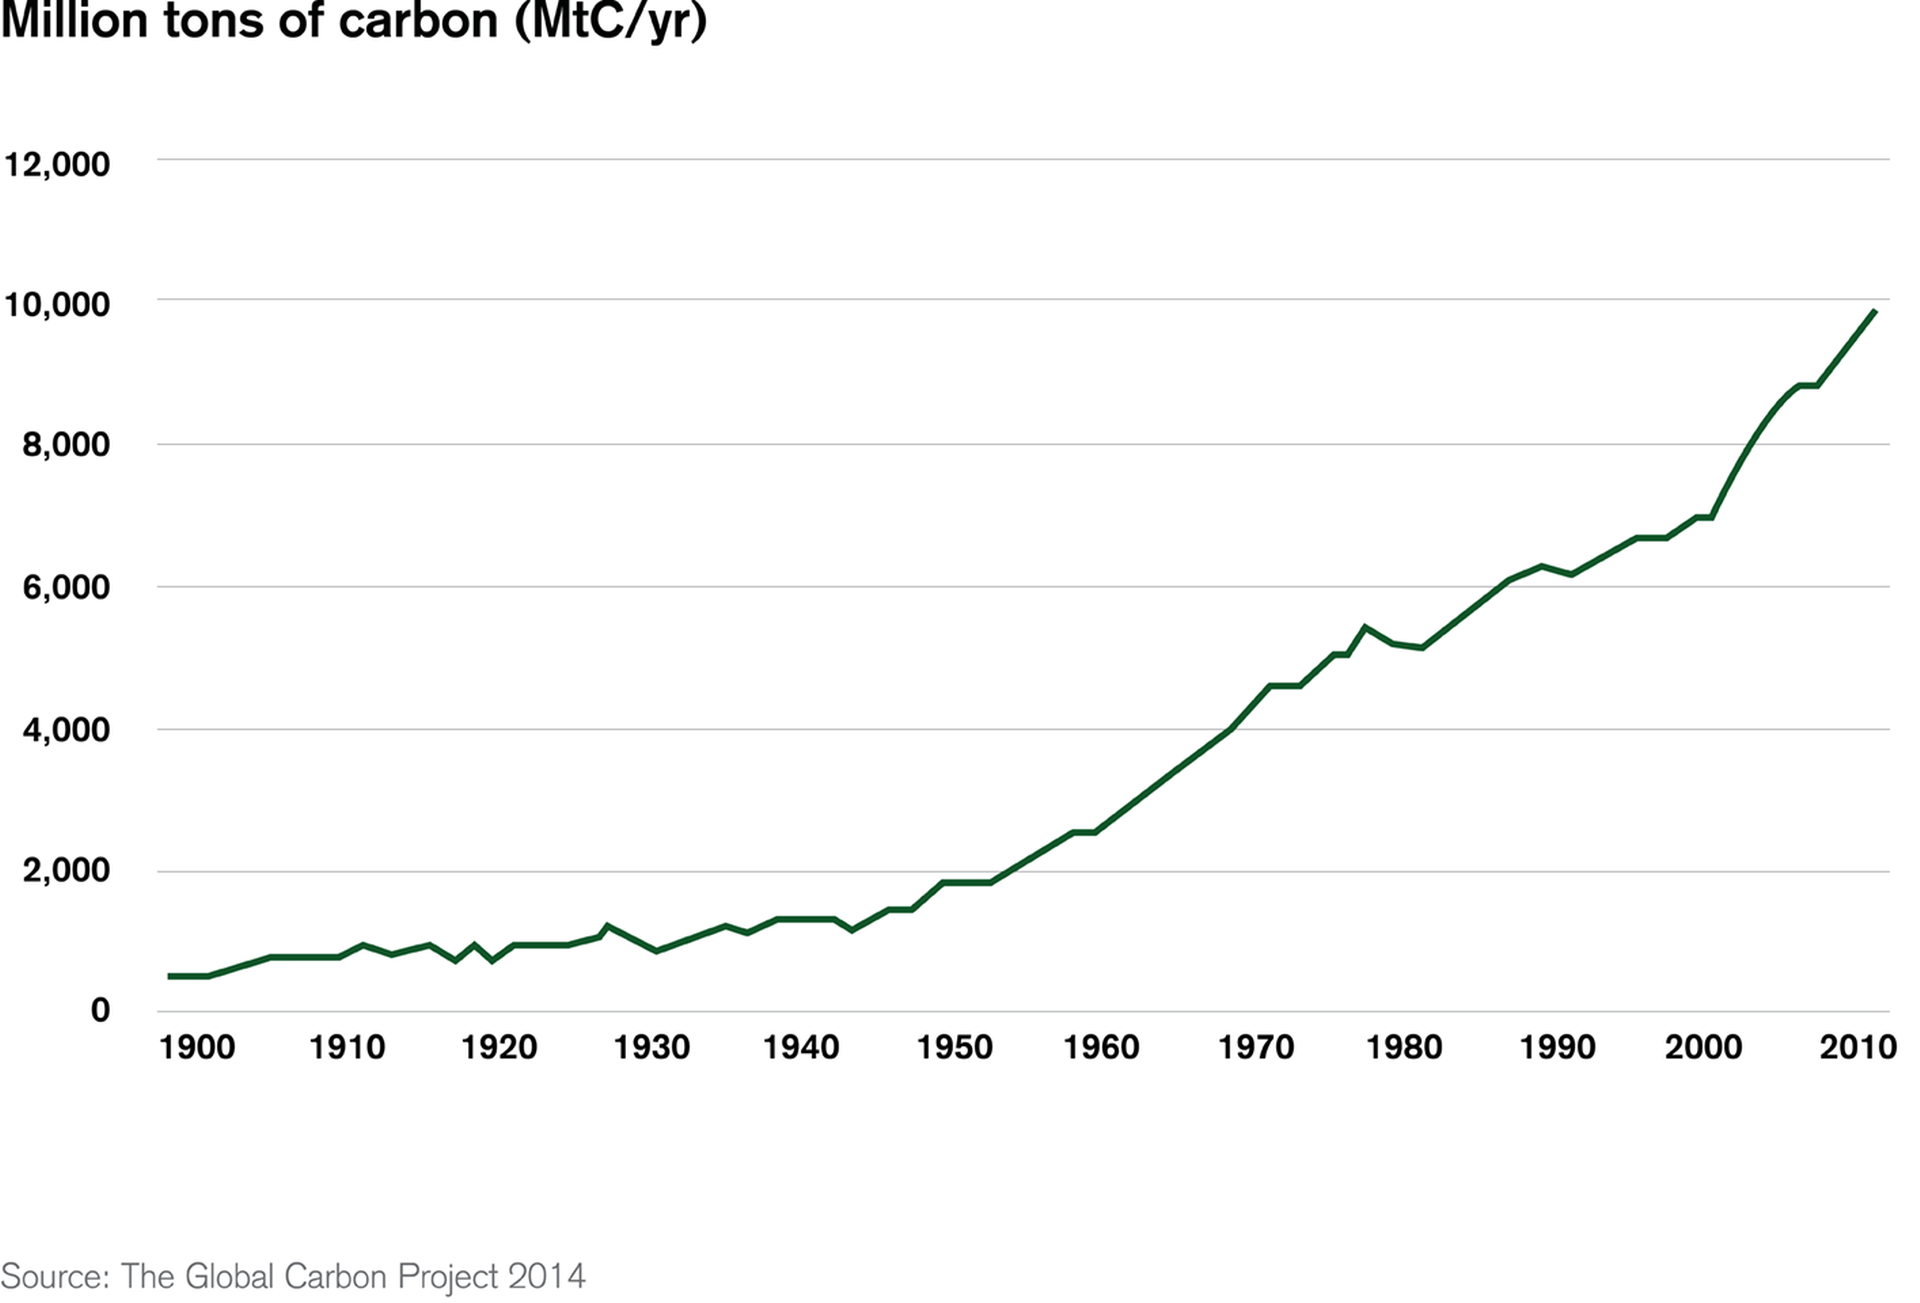 CO2 emissions continue to rise